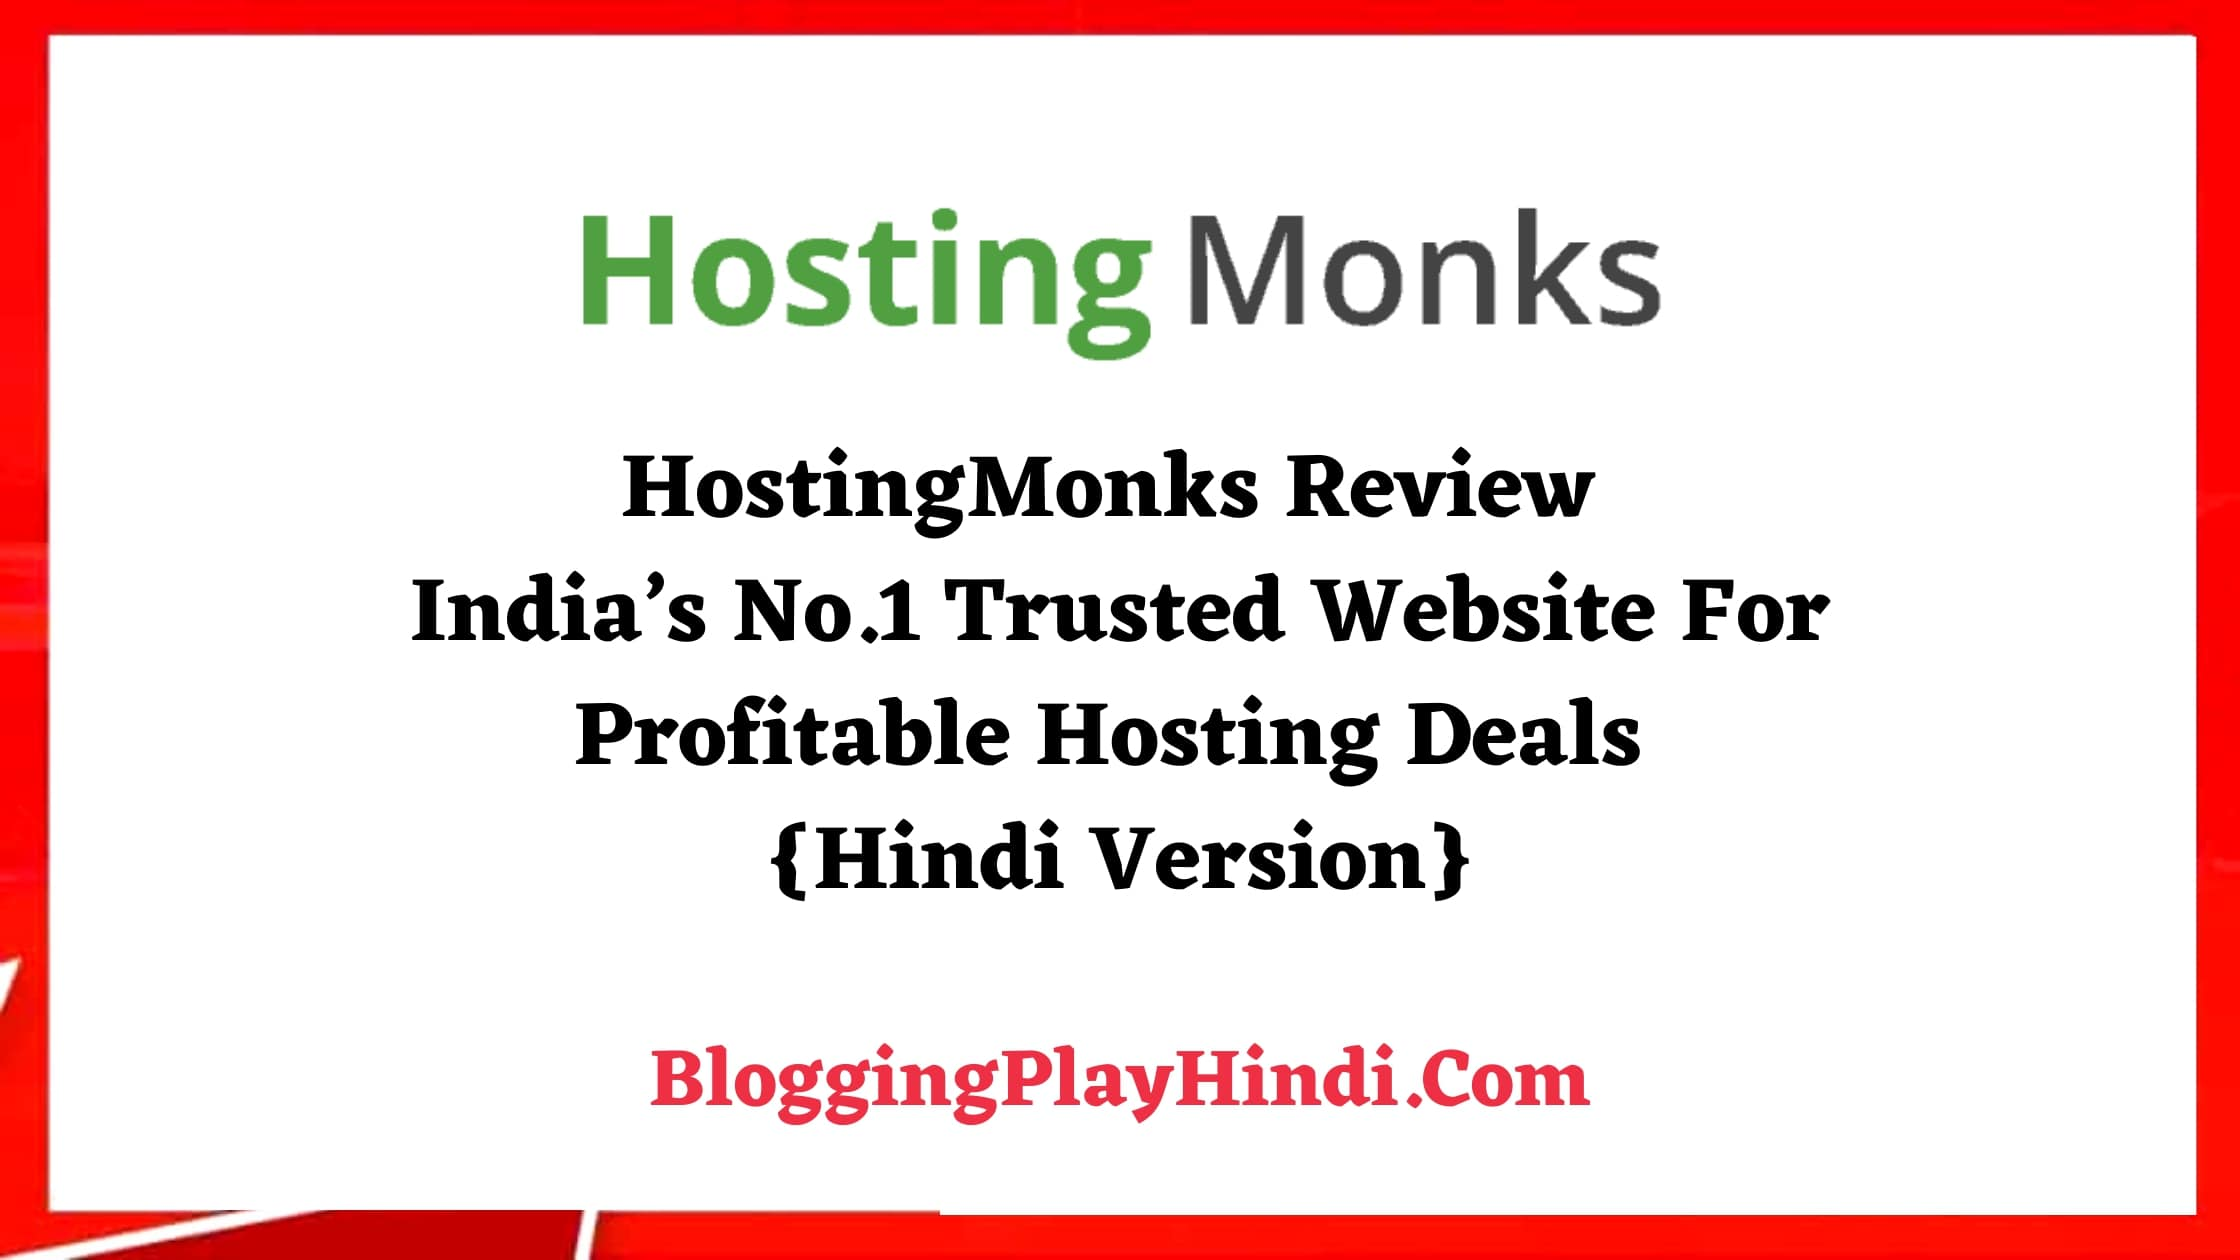 HostingMonks Review Article CRED Business Model